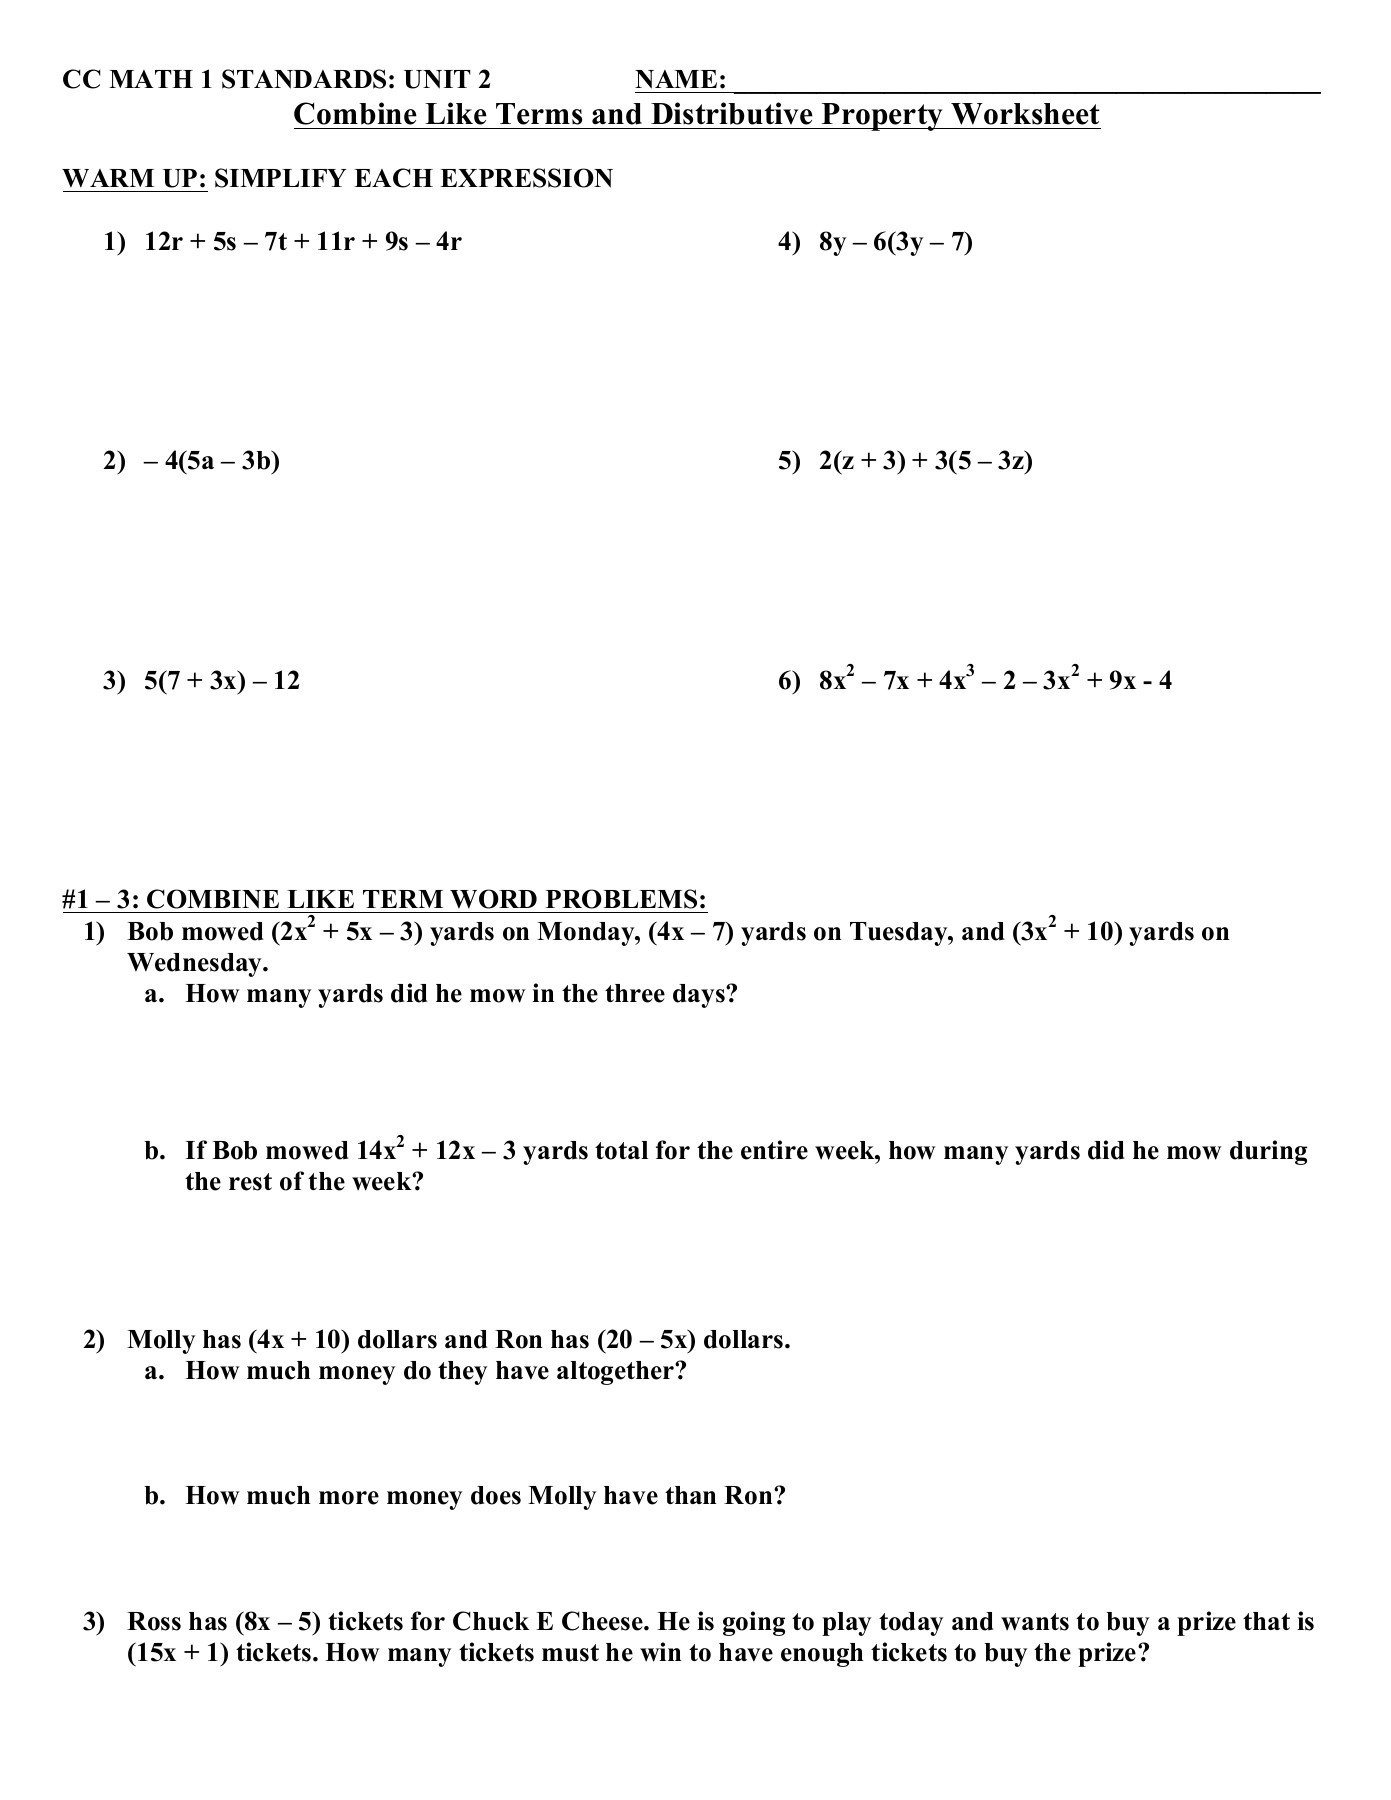 Combining Like Terms Equations Worksheet Bine Like Terms and Distributive Property Worksheet Pages